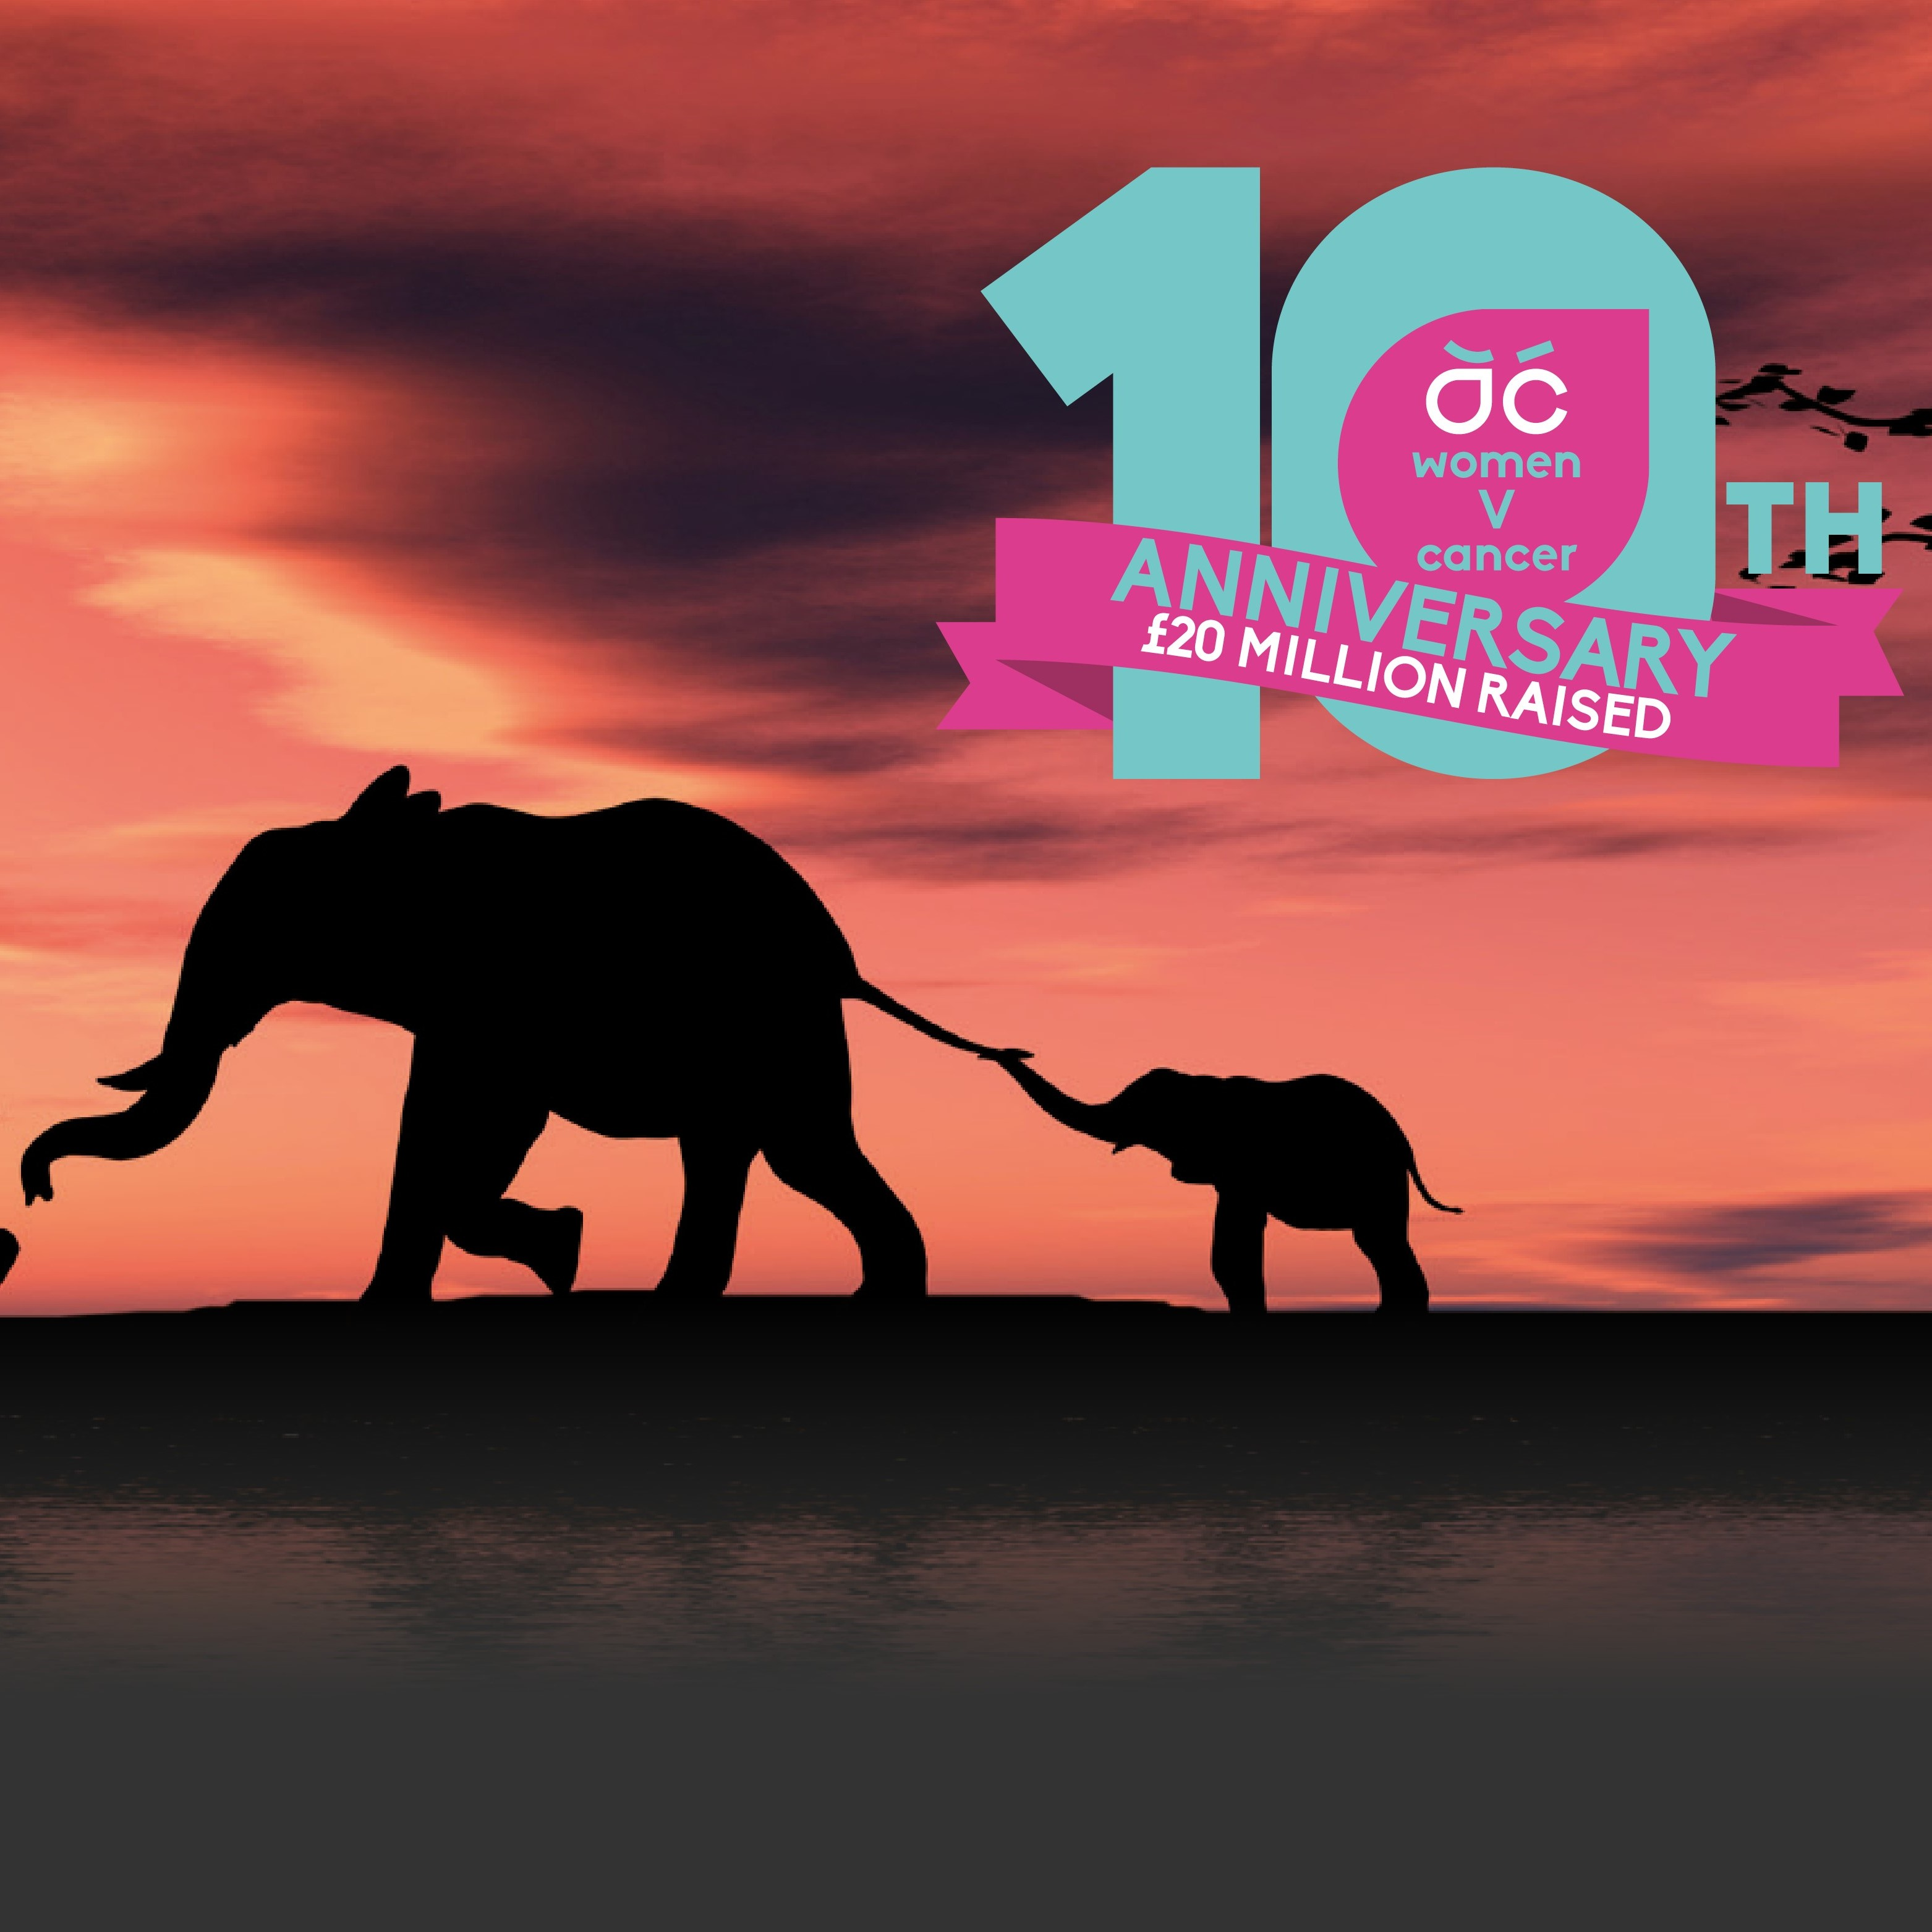 Women V Cancer Cycle Africa 2021 10-year anniversary adventure